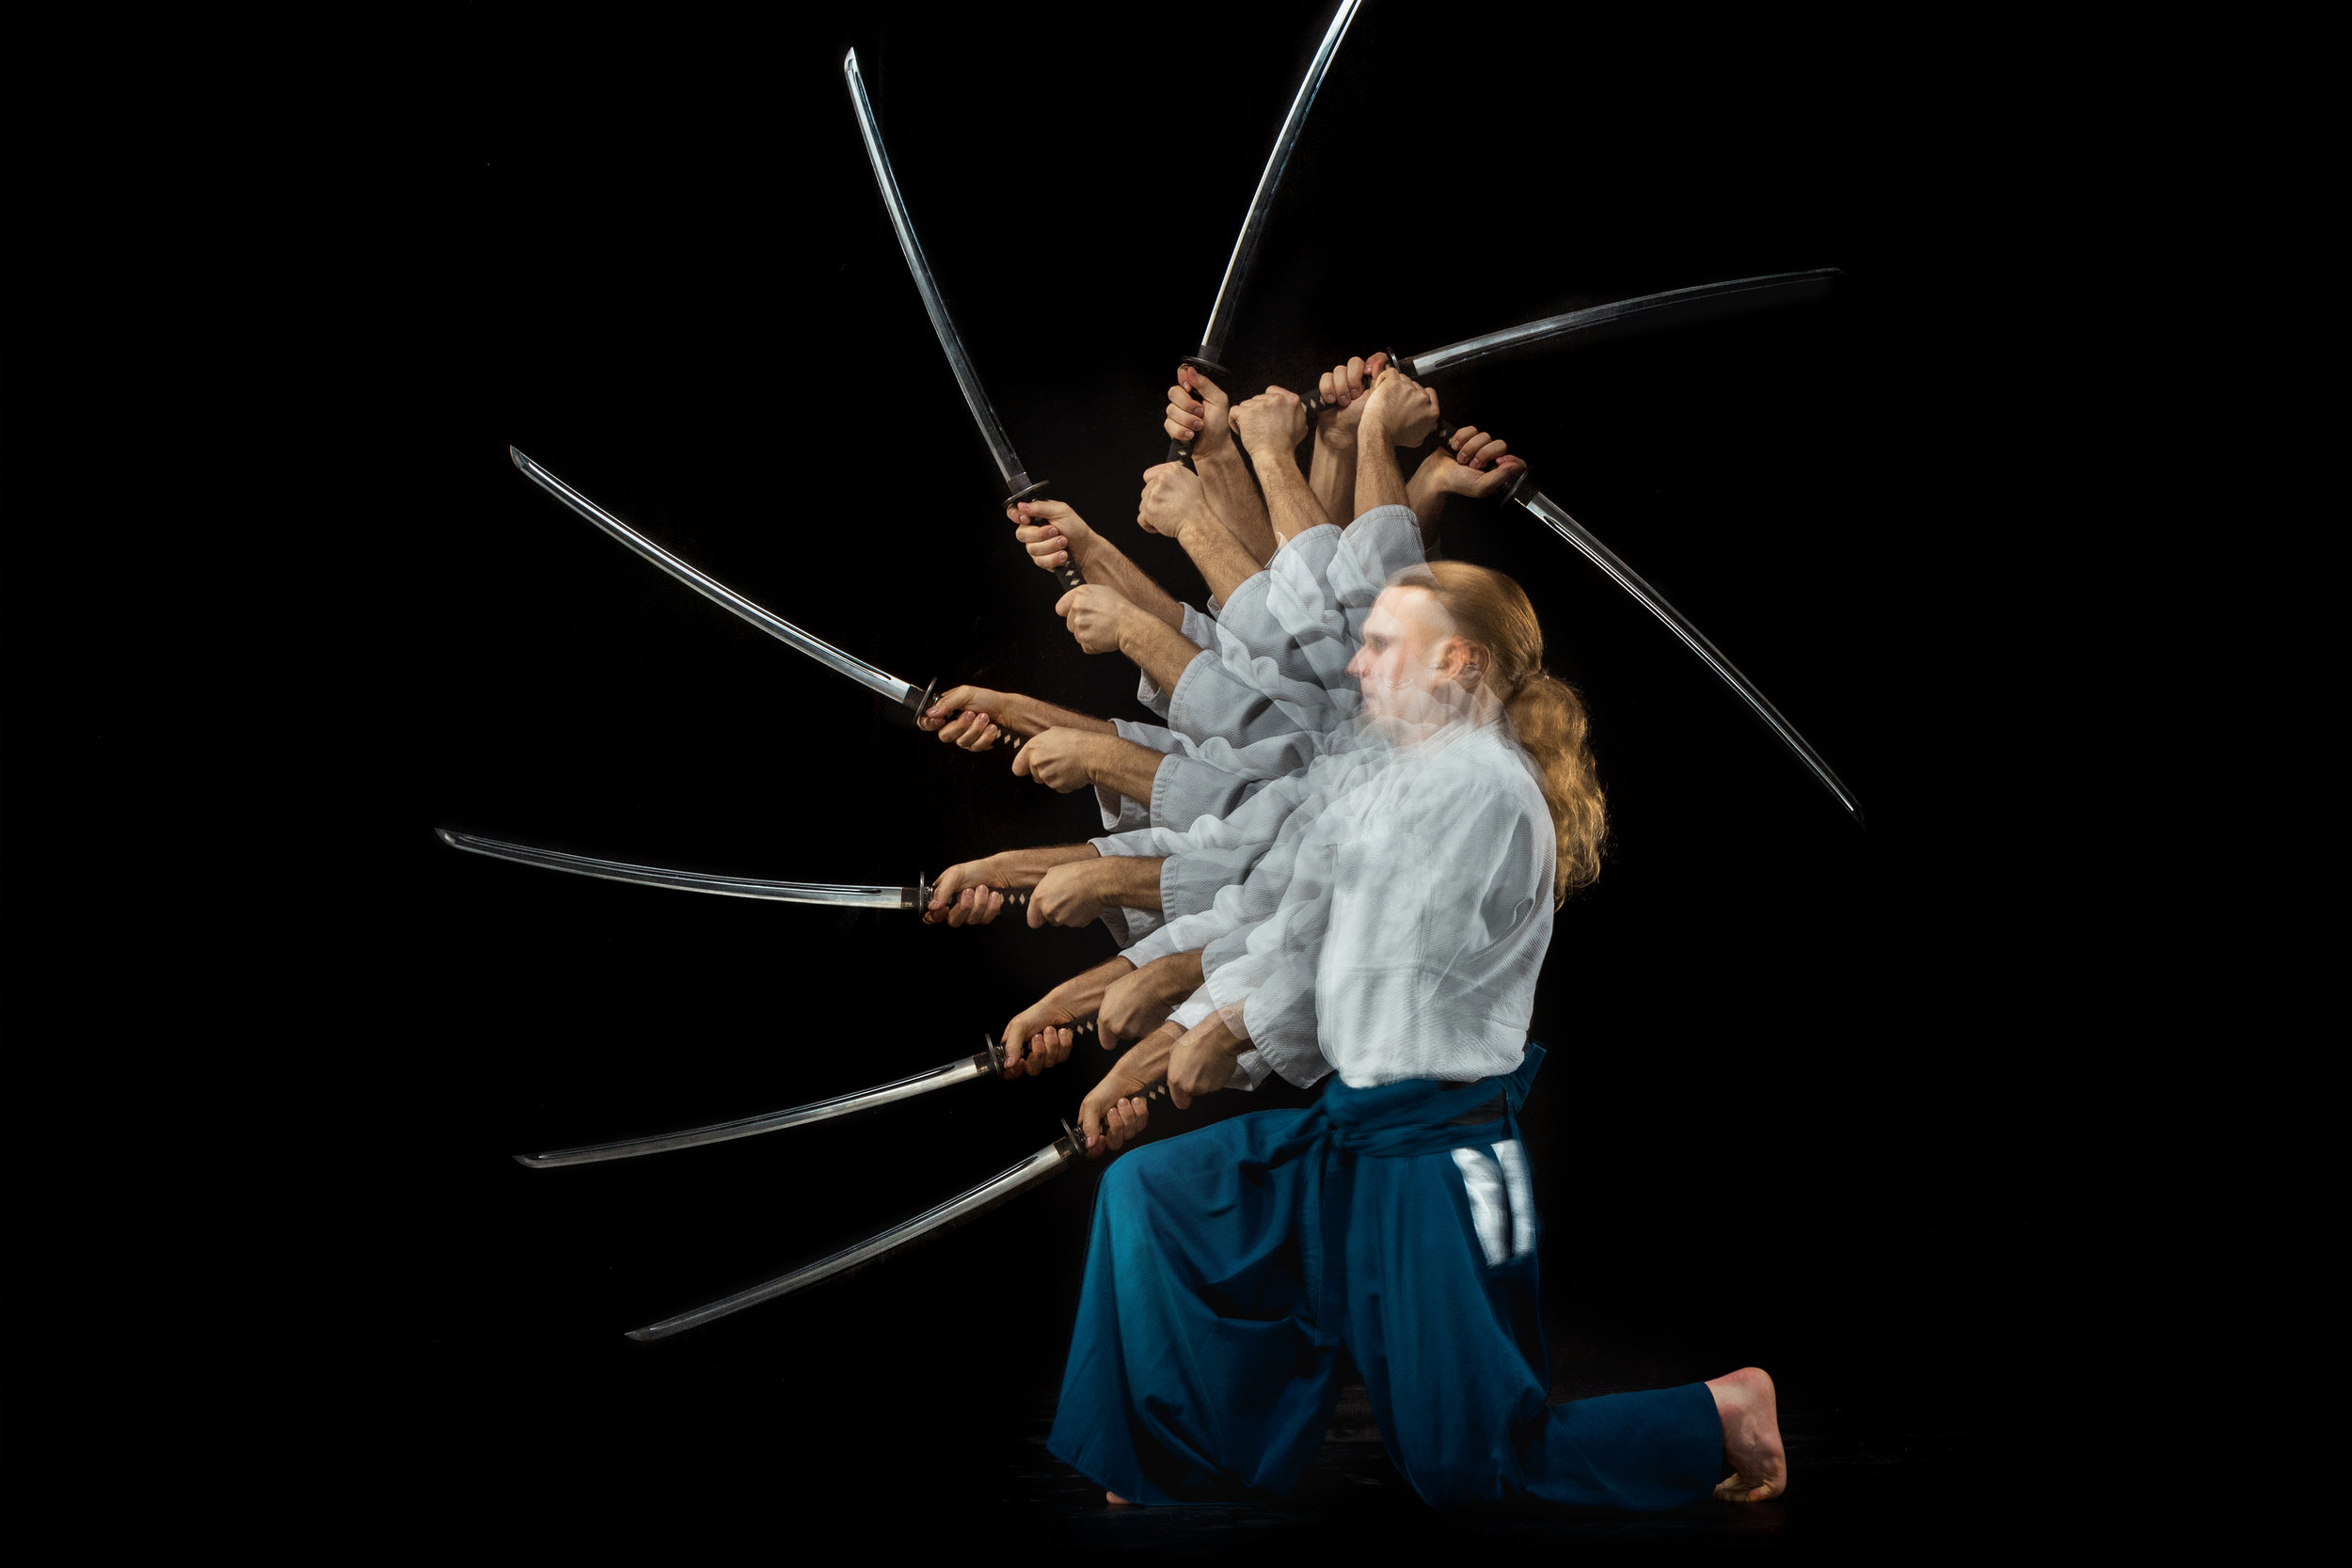 the-young-man-are-training-aikido-at-studio-P374ZM6.jpg